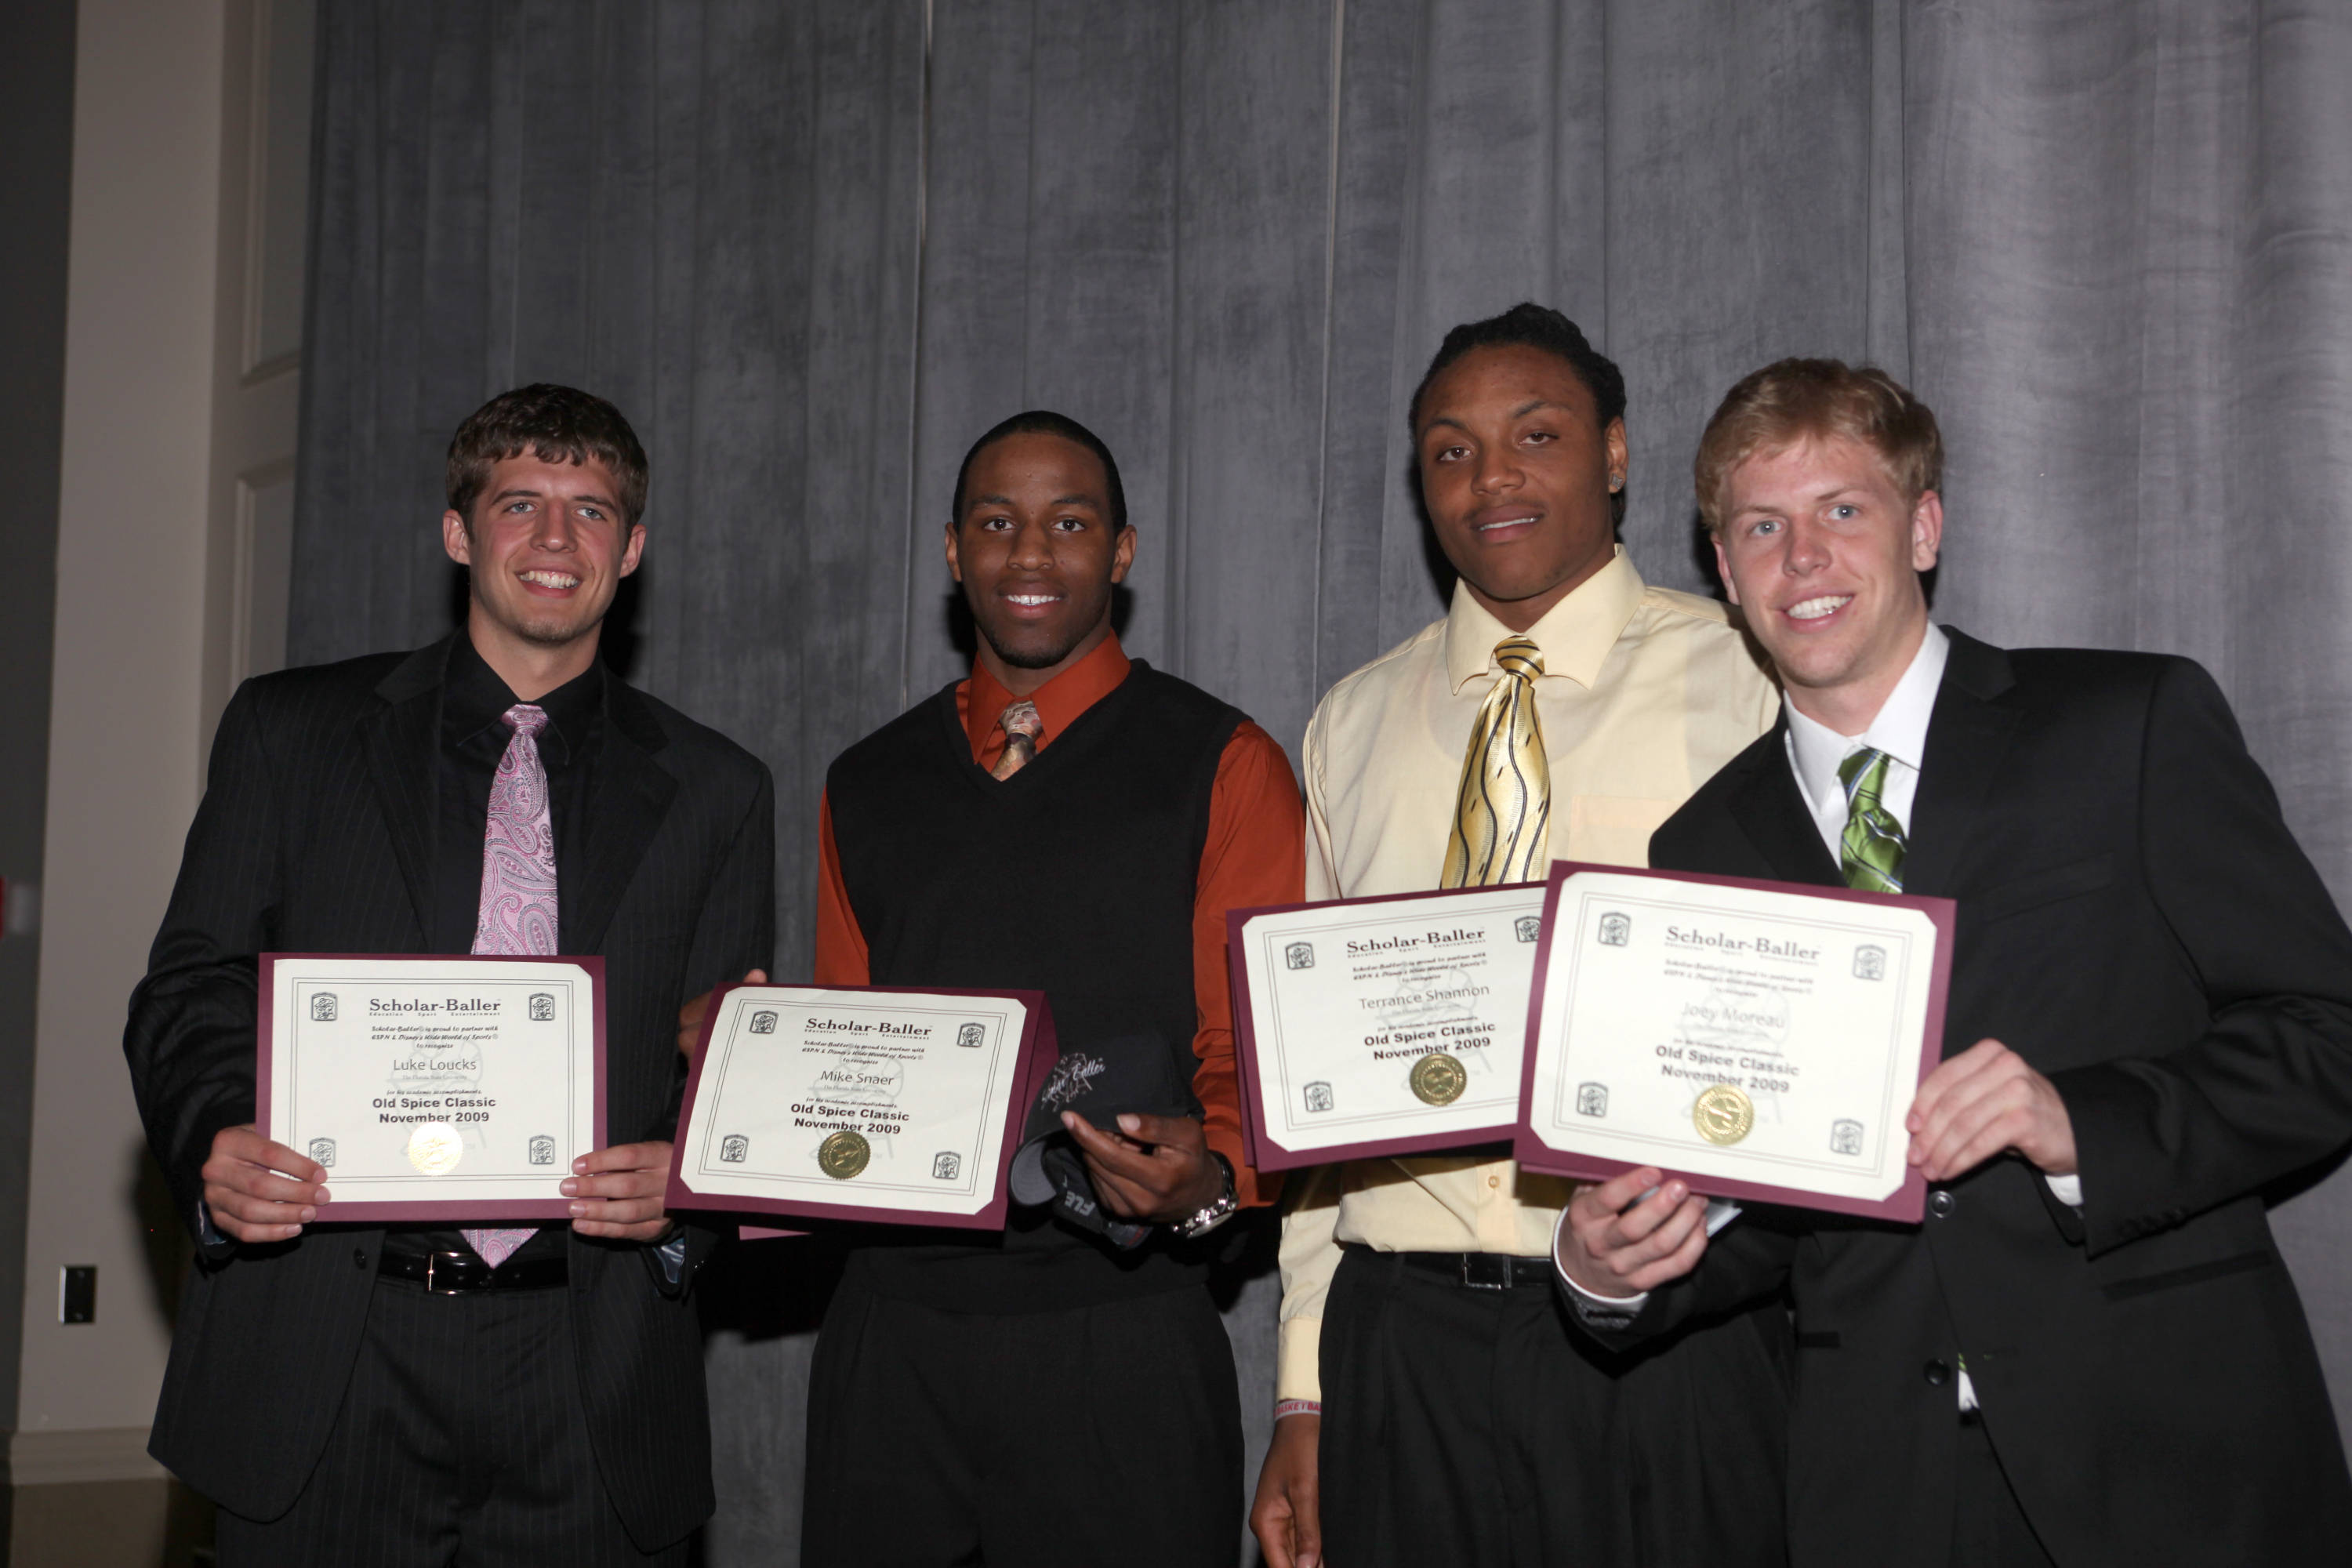 College of Music: Honors and Convocation held at the Alumni Center.2010 Men's Basketball Banquet